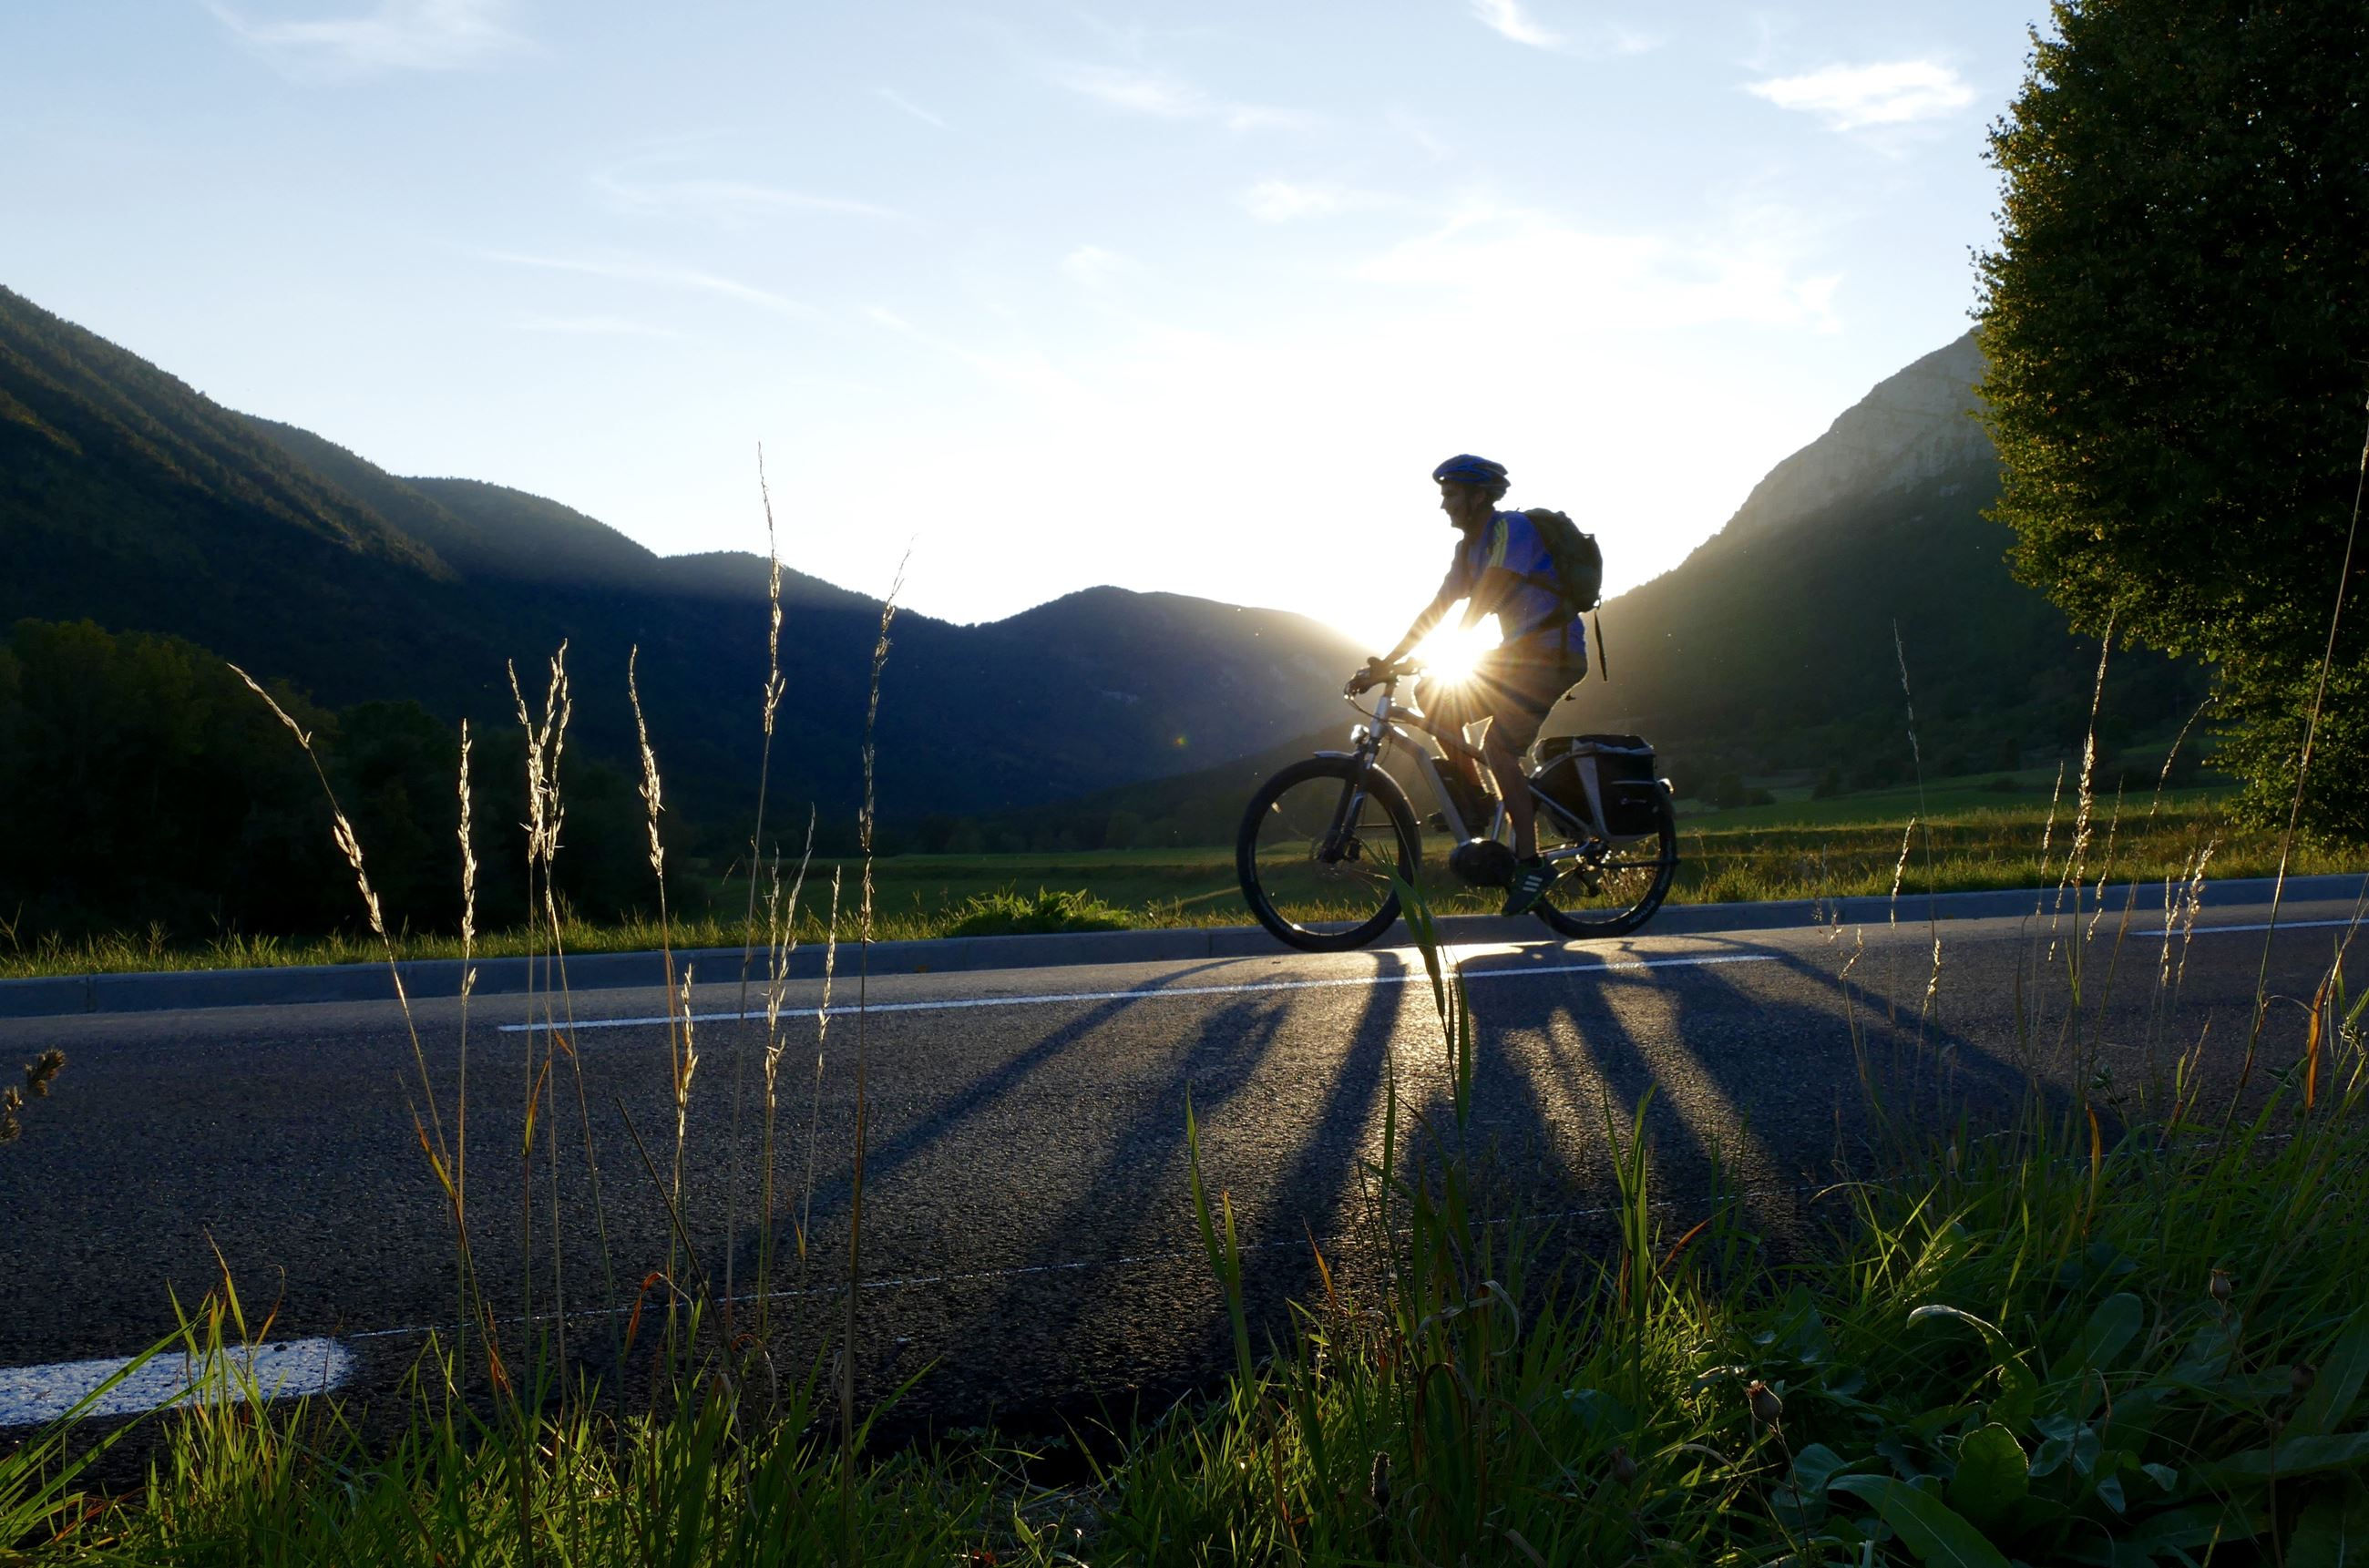 Image of a silhouette of a bicyclist  riding down a road against a sunset and a mountain